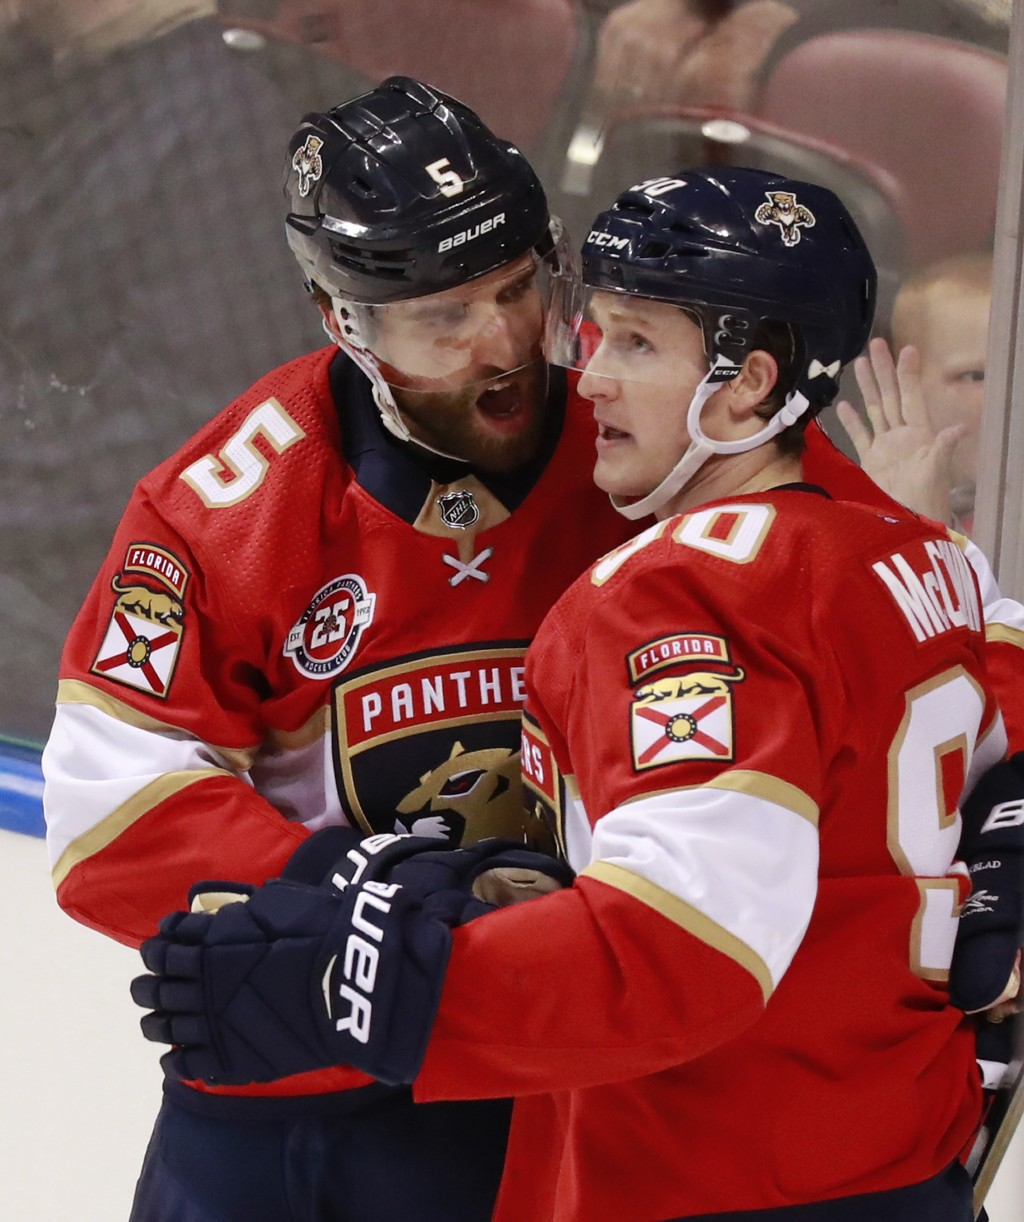 Florida Panthers defenseman Aaron Ekblad (5) celebrates with center Jared McCann (90) after scoring a goal during the second period of an NHL hockey g